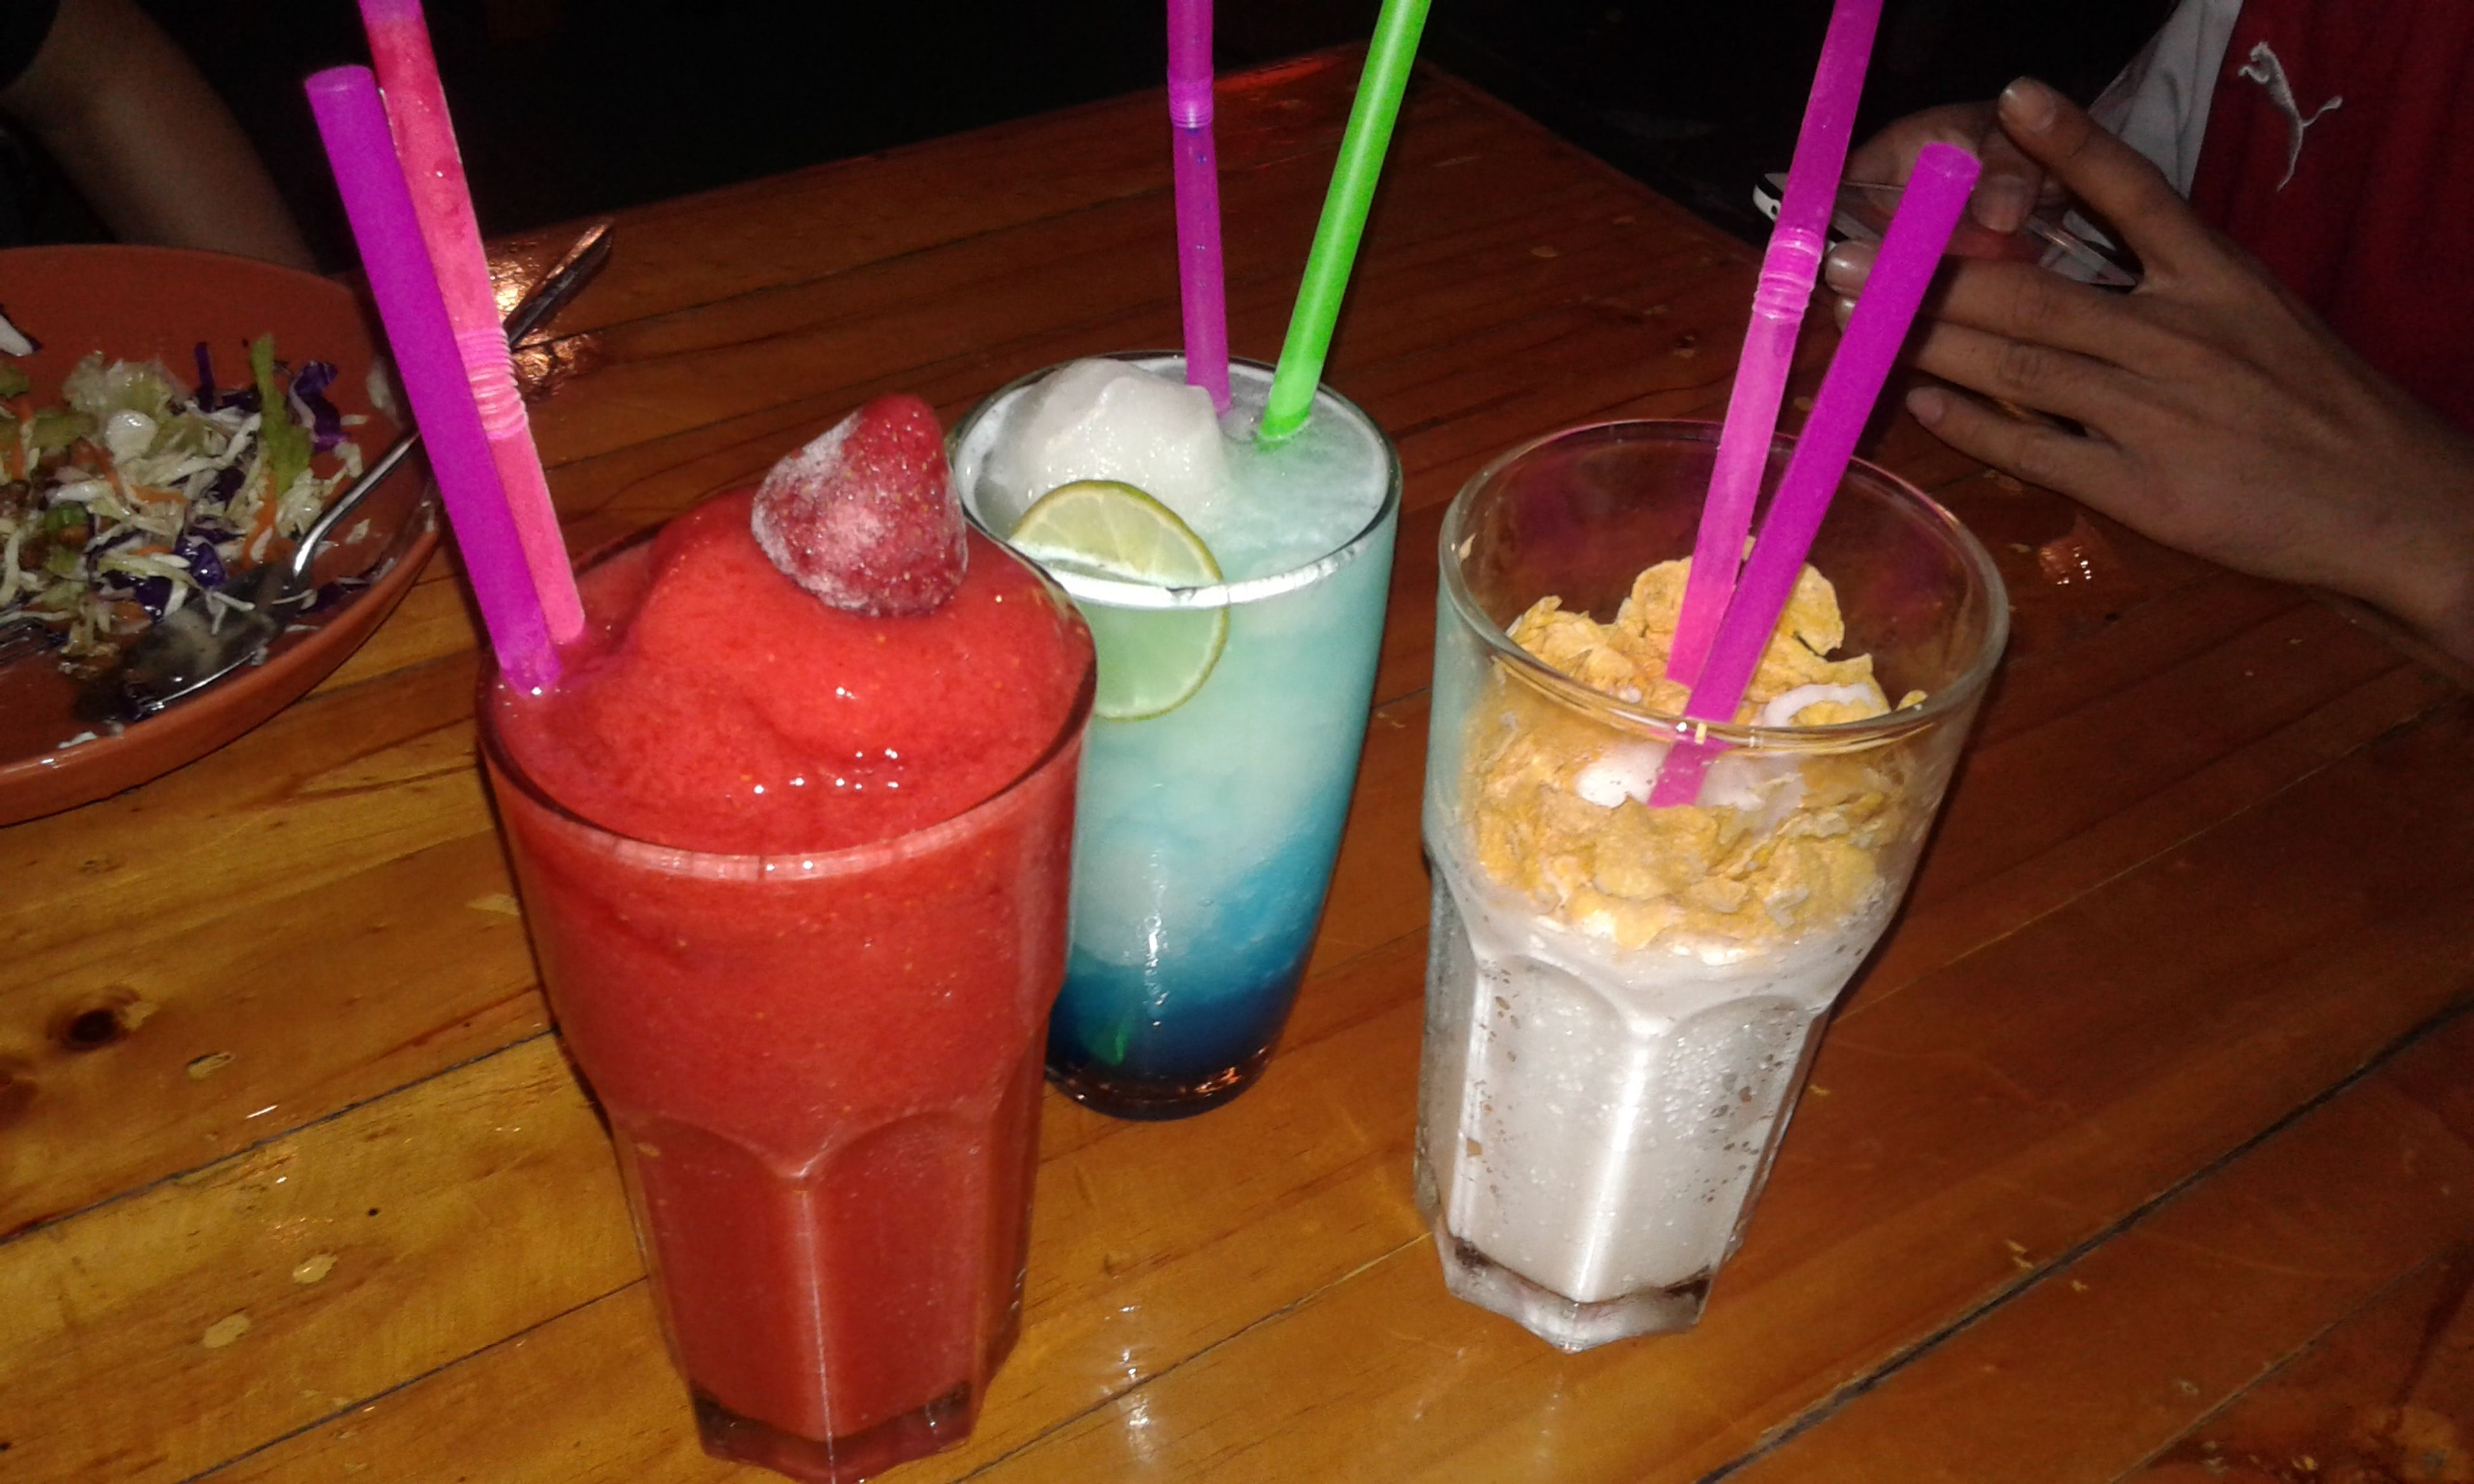 food and drink, table, drink, freshness, drinking glass, indoors, refreshment, drinking straw, still life, wood - material, cocktail, close-up, high angle view, wooden, juice, restaurant, pink color, alcohol, healthy eating, glass - material